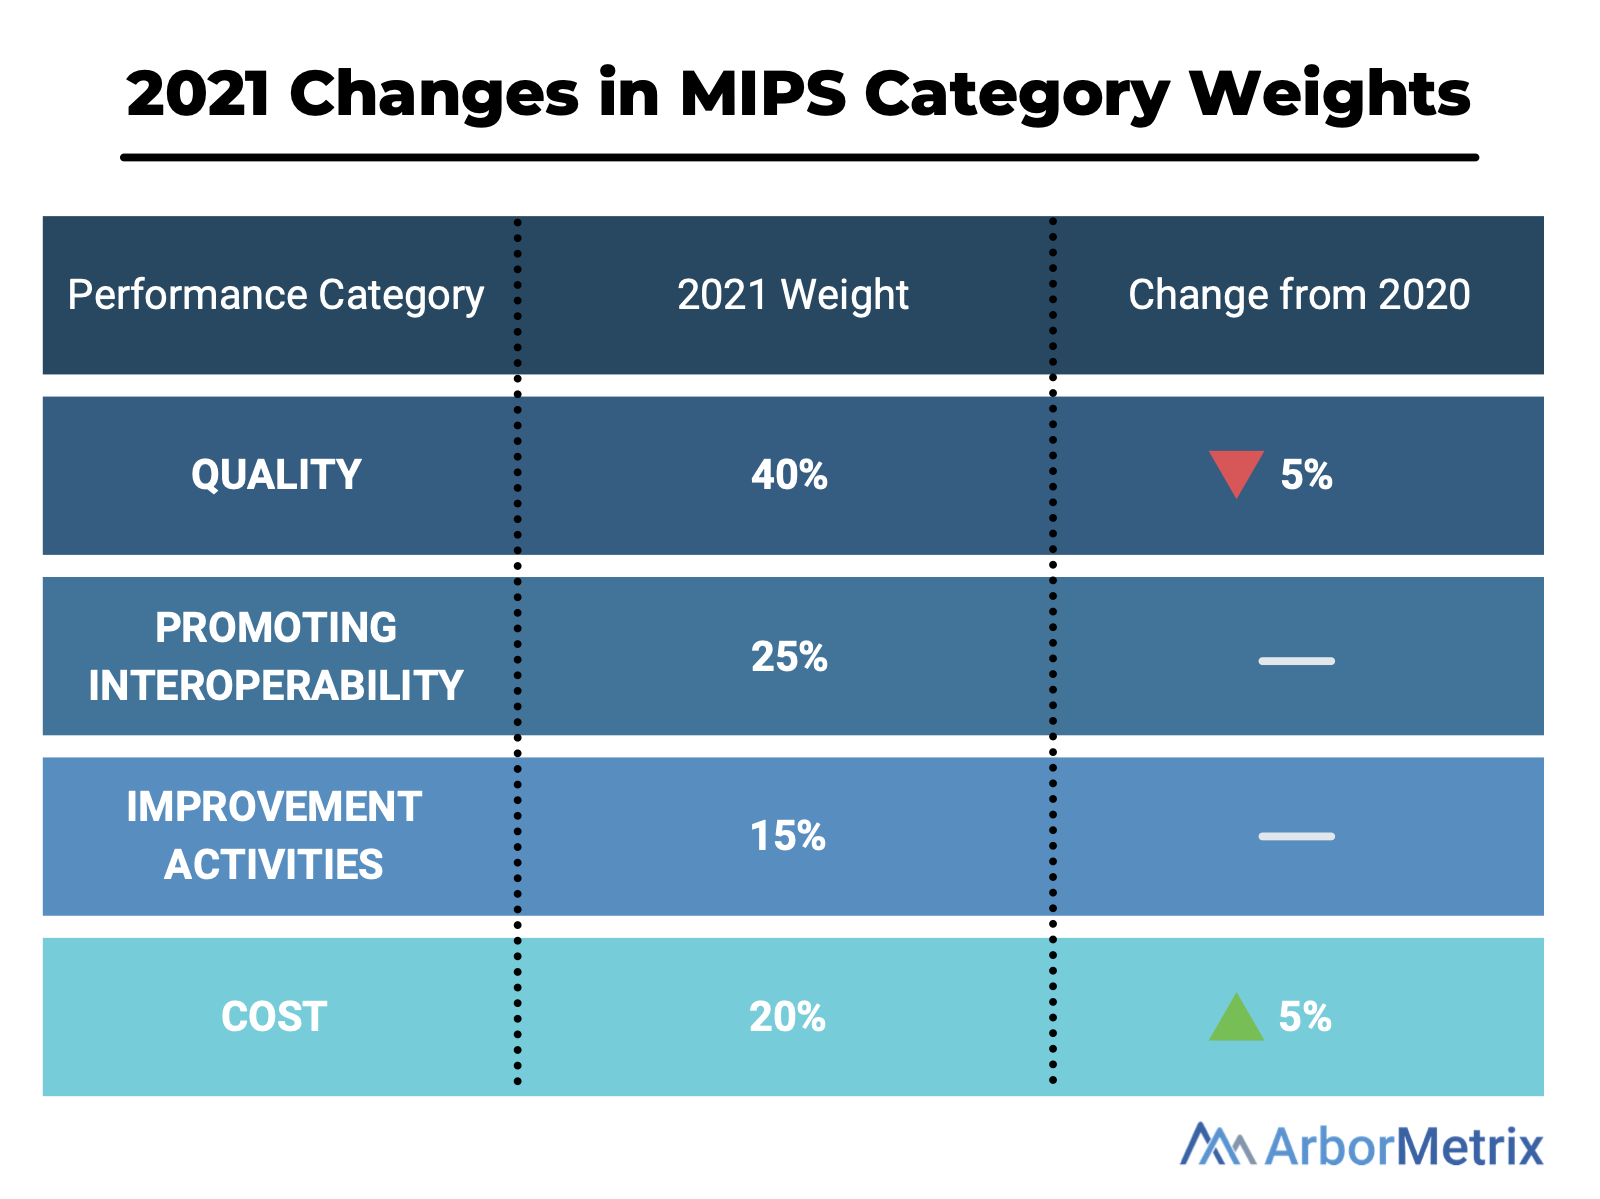 2021 changes in MIPS category weights